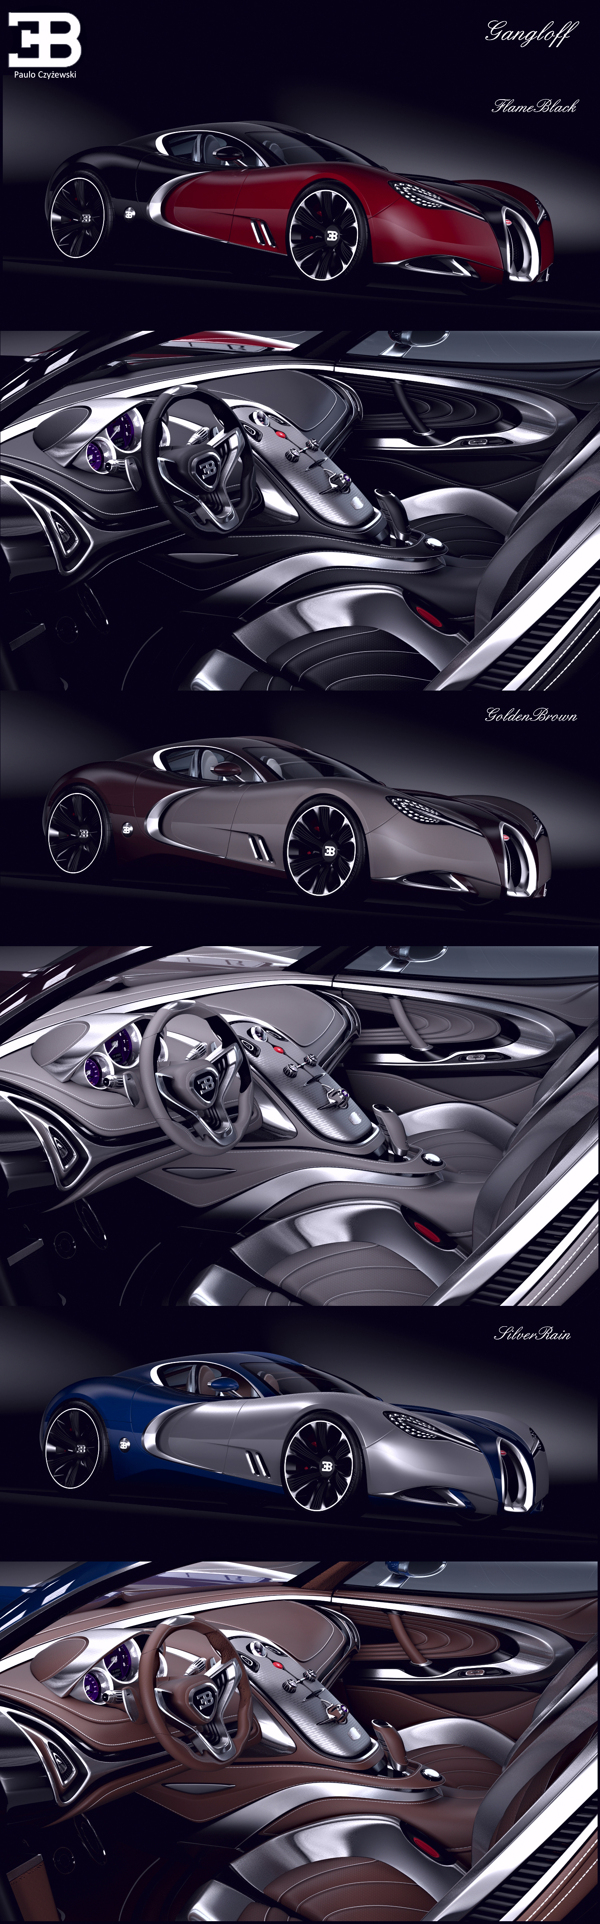 Bugatti Gangloff concept. Breath taking, stunning car.